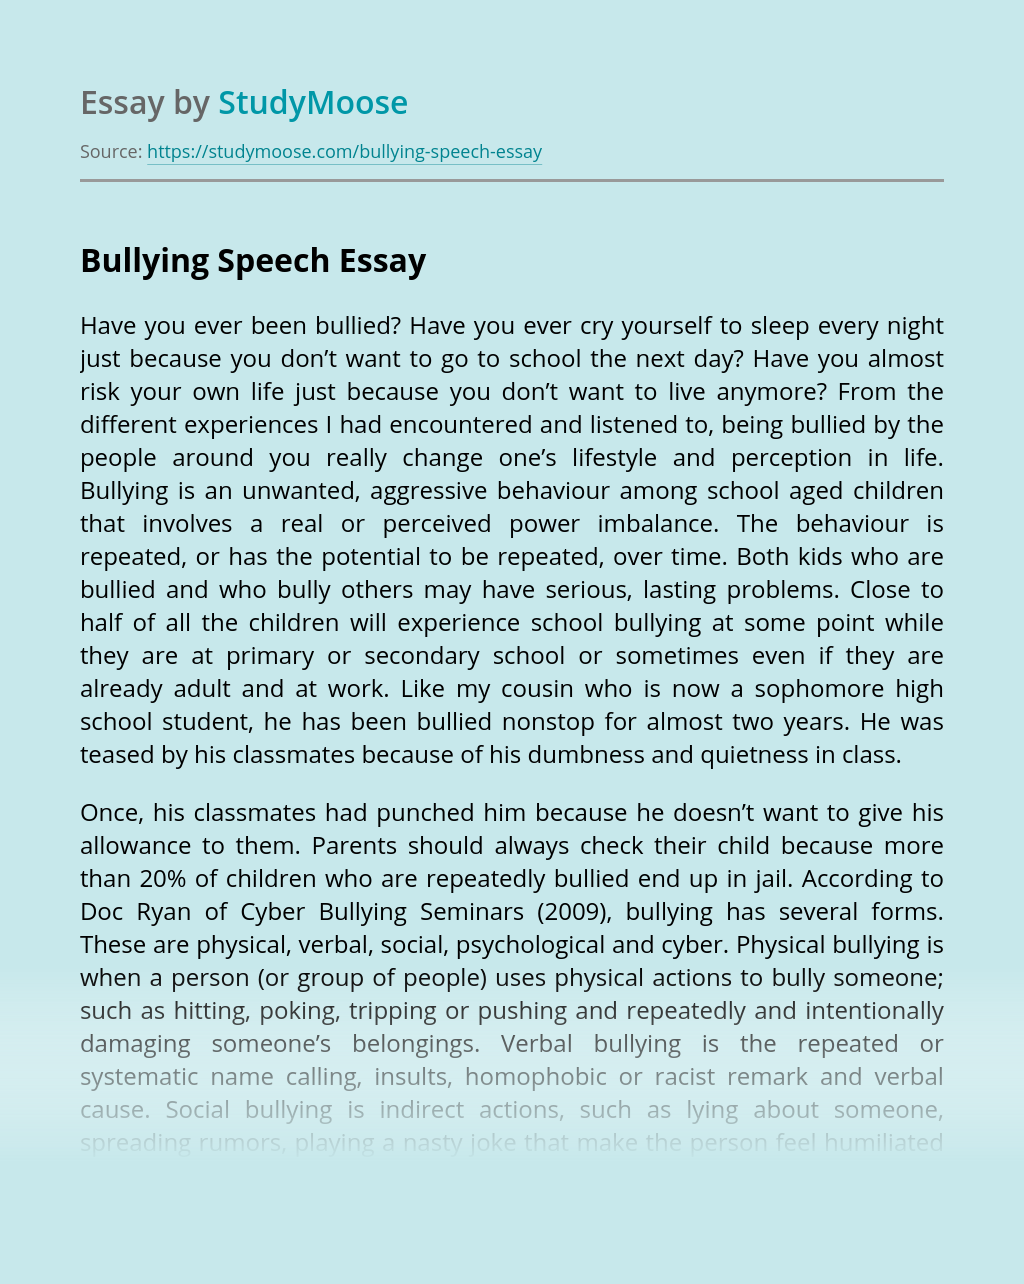 Bullying Speech